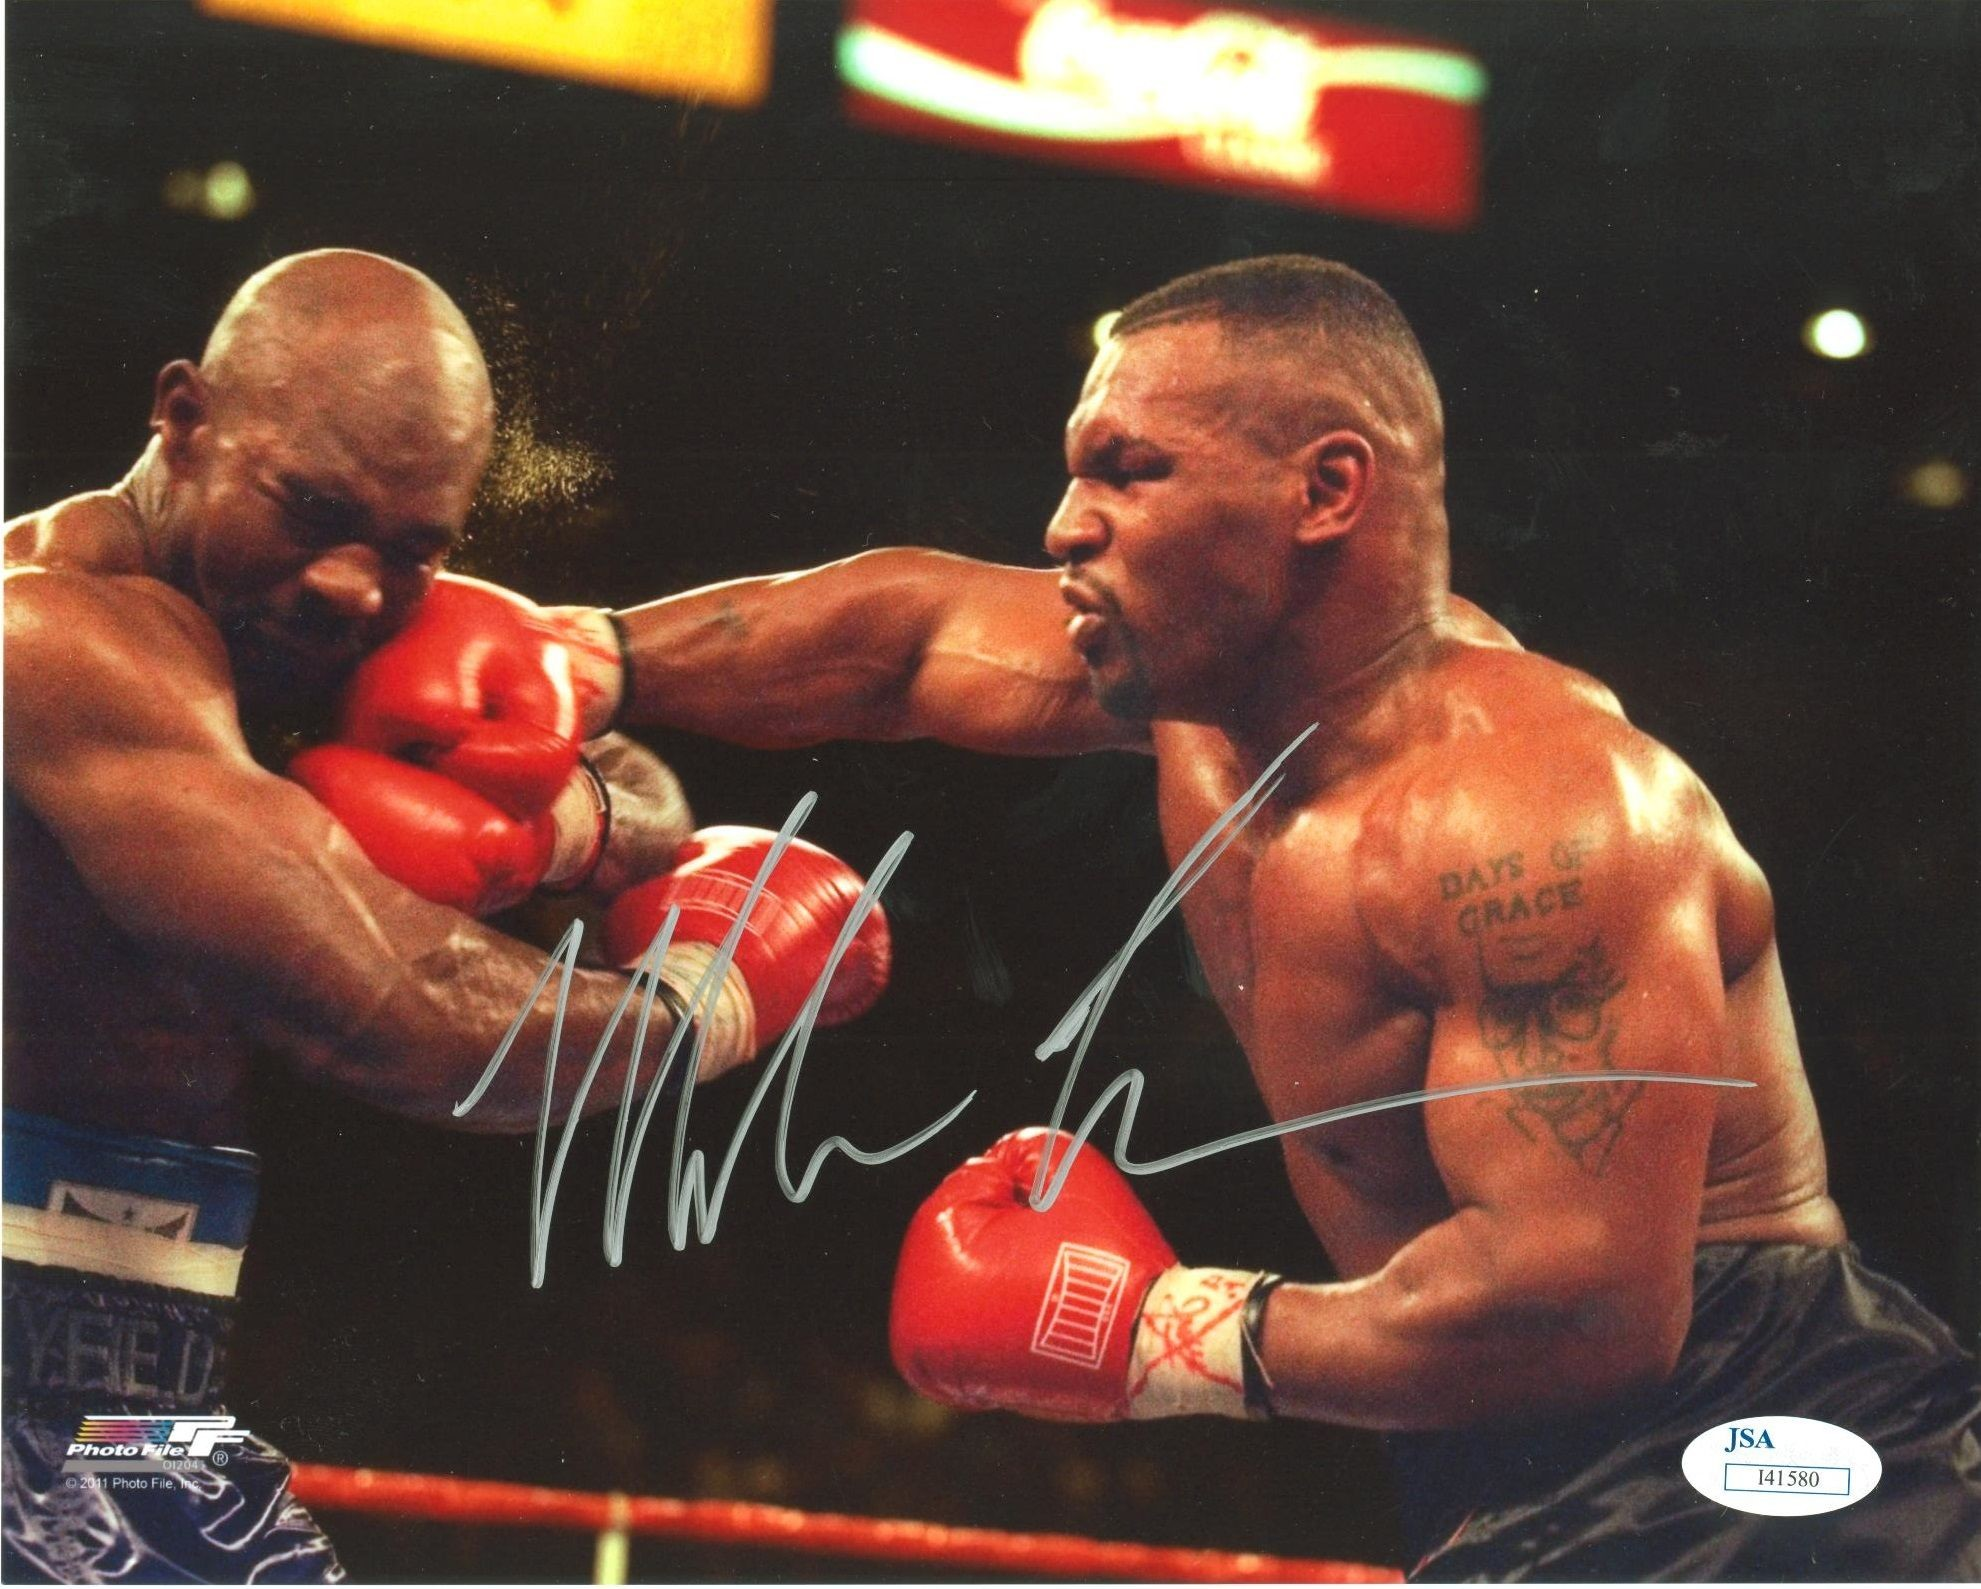 V.815: Mike Tyson Wallpapers, HD Images of Mike Tyson .